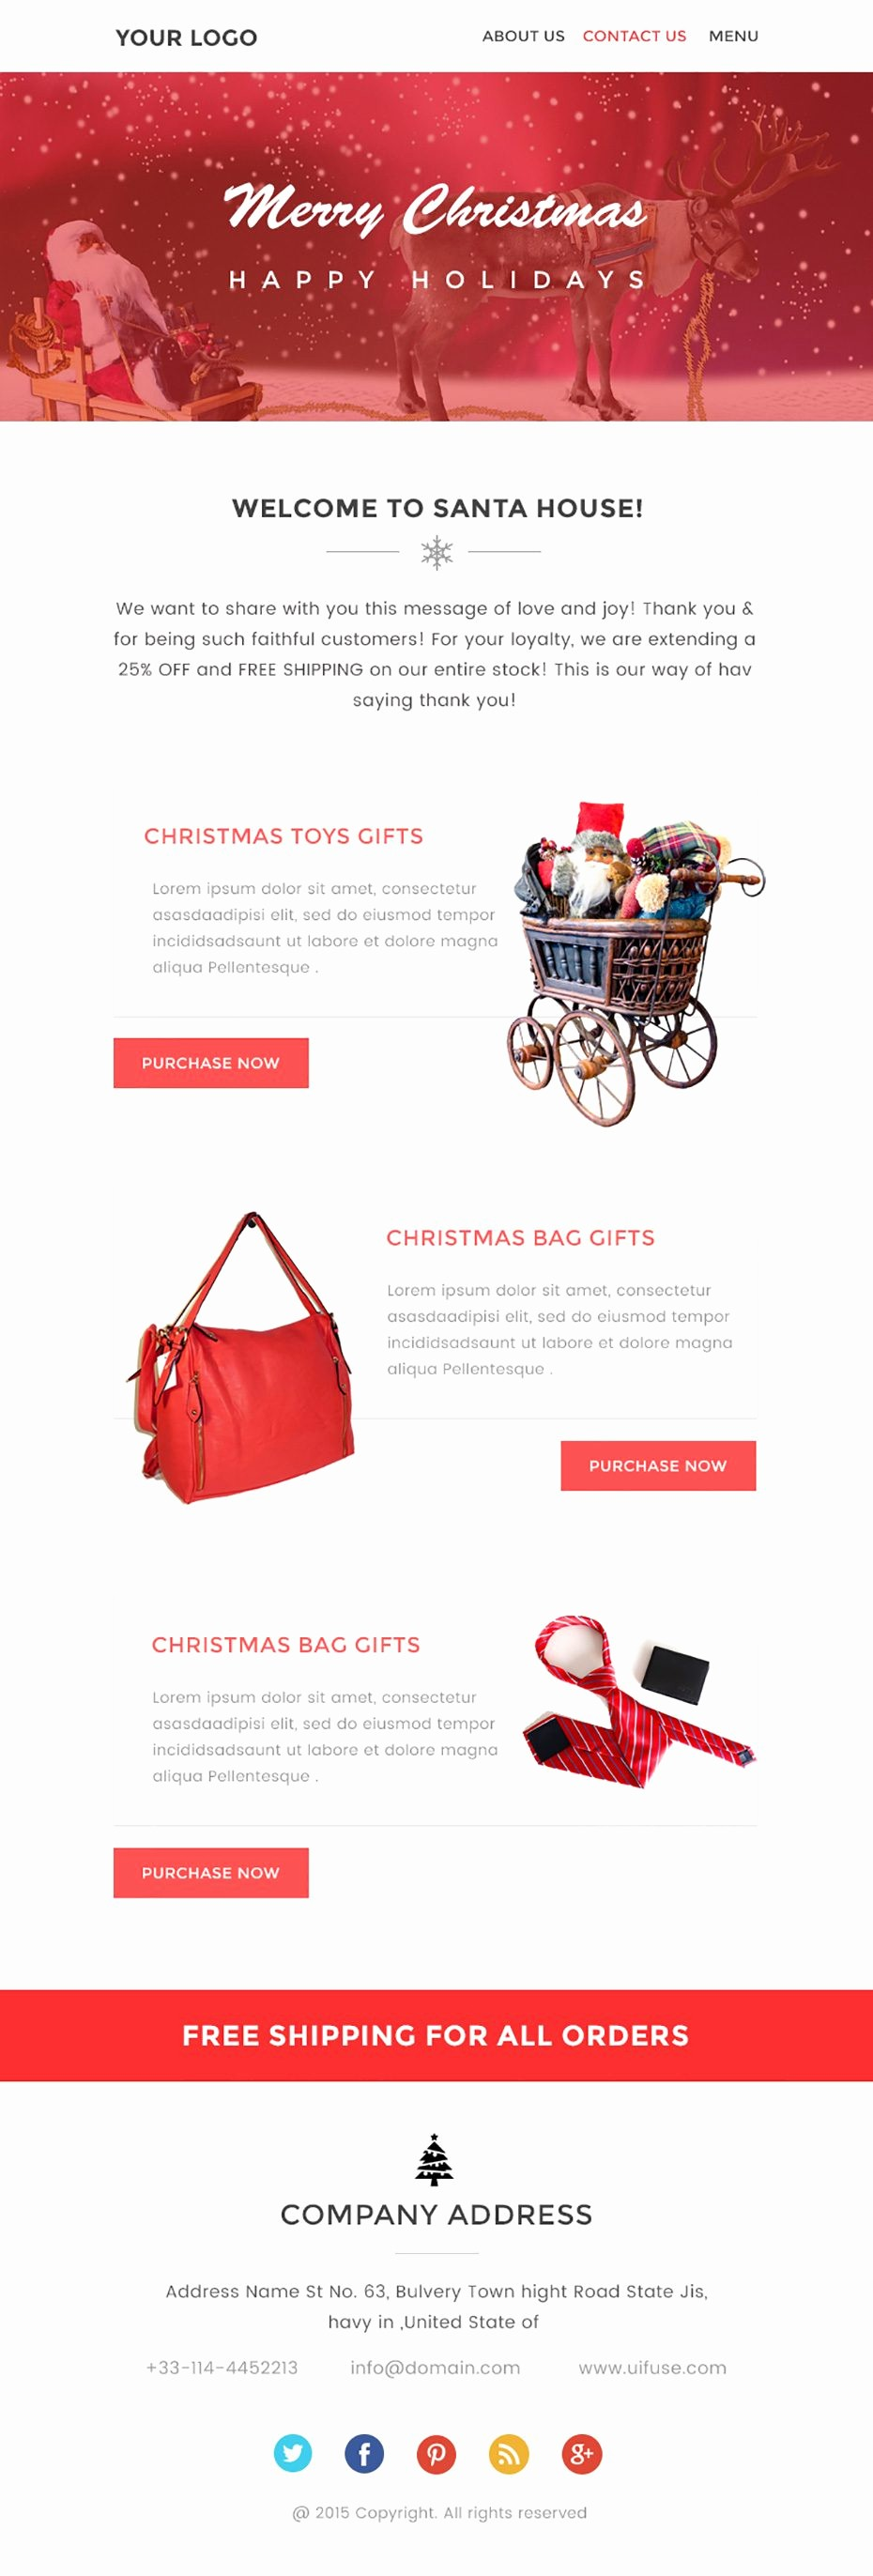 Newsletter Design Templates Free Download Unique Christmas Newsletter Template – Free Psd Download Uifuse